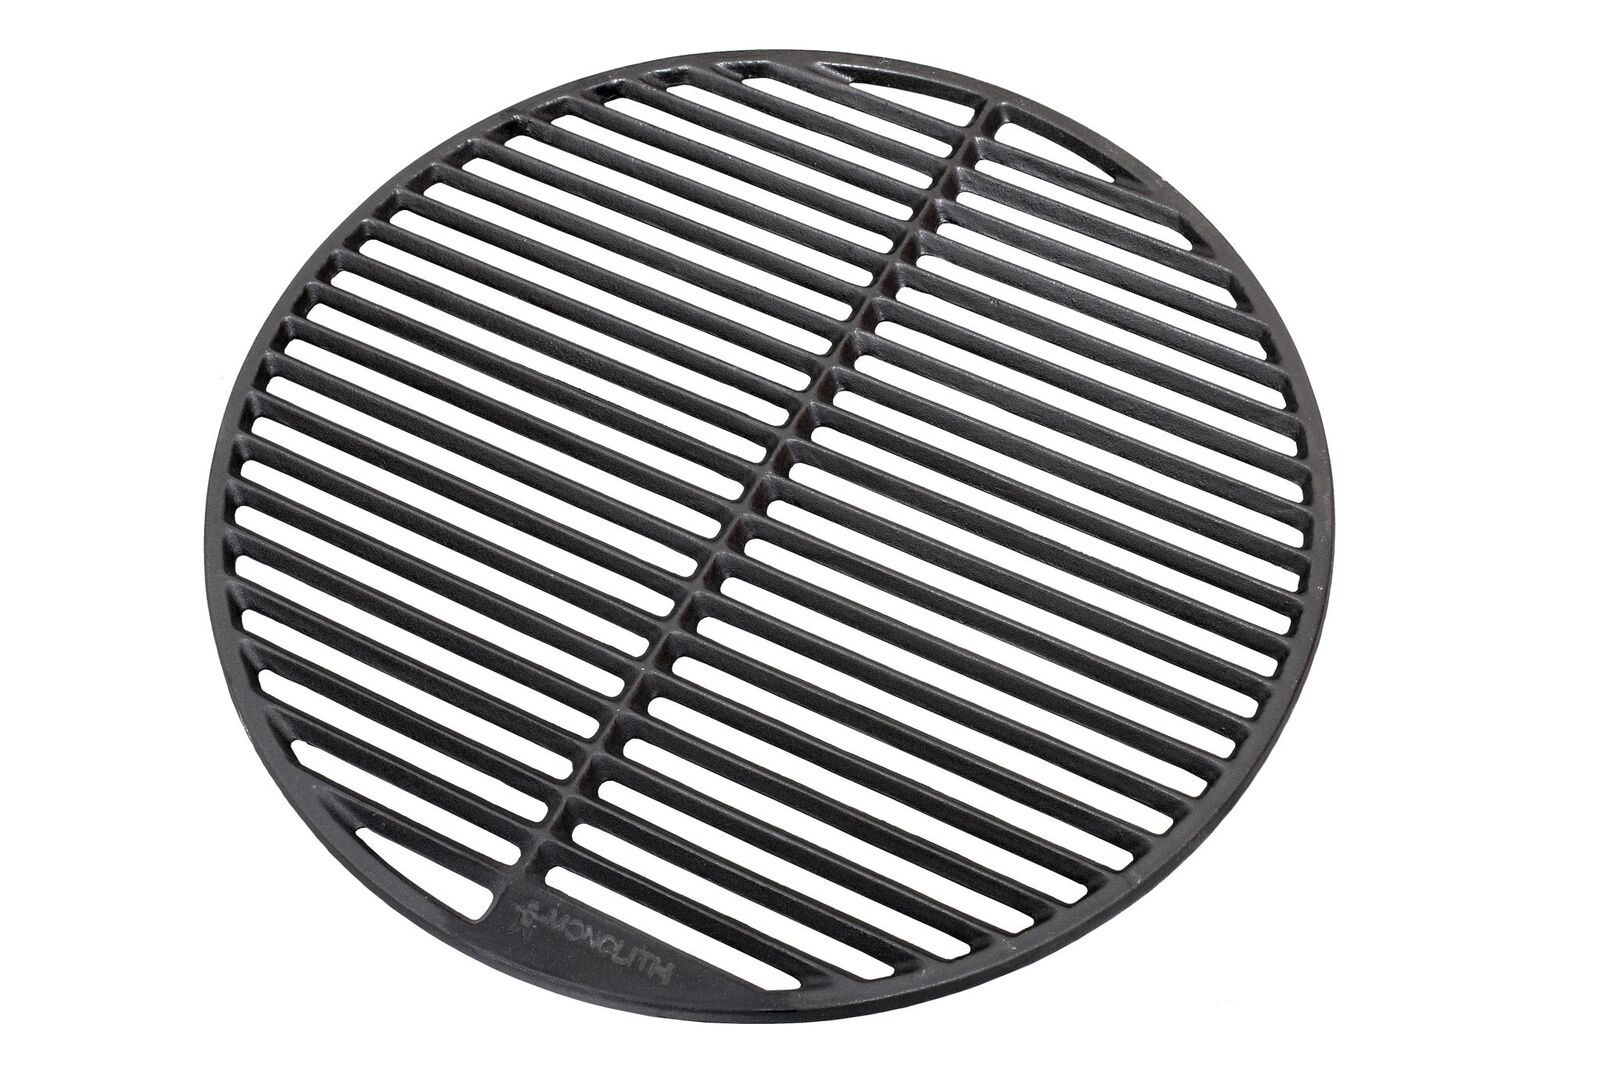 Monolith Cast Iron Grill Grate